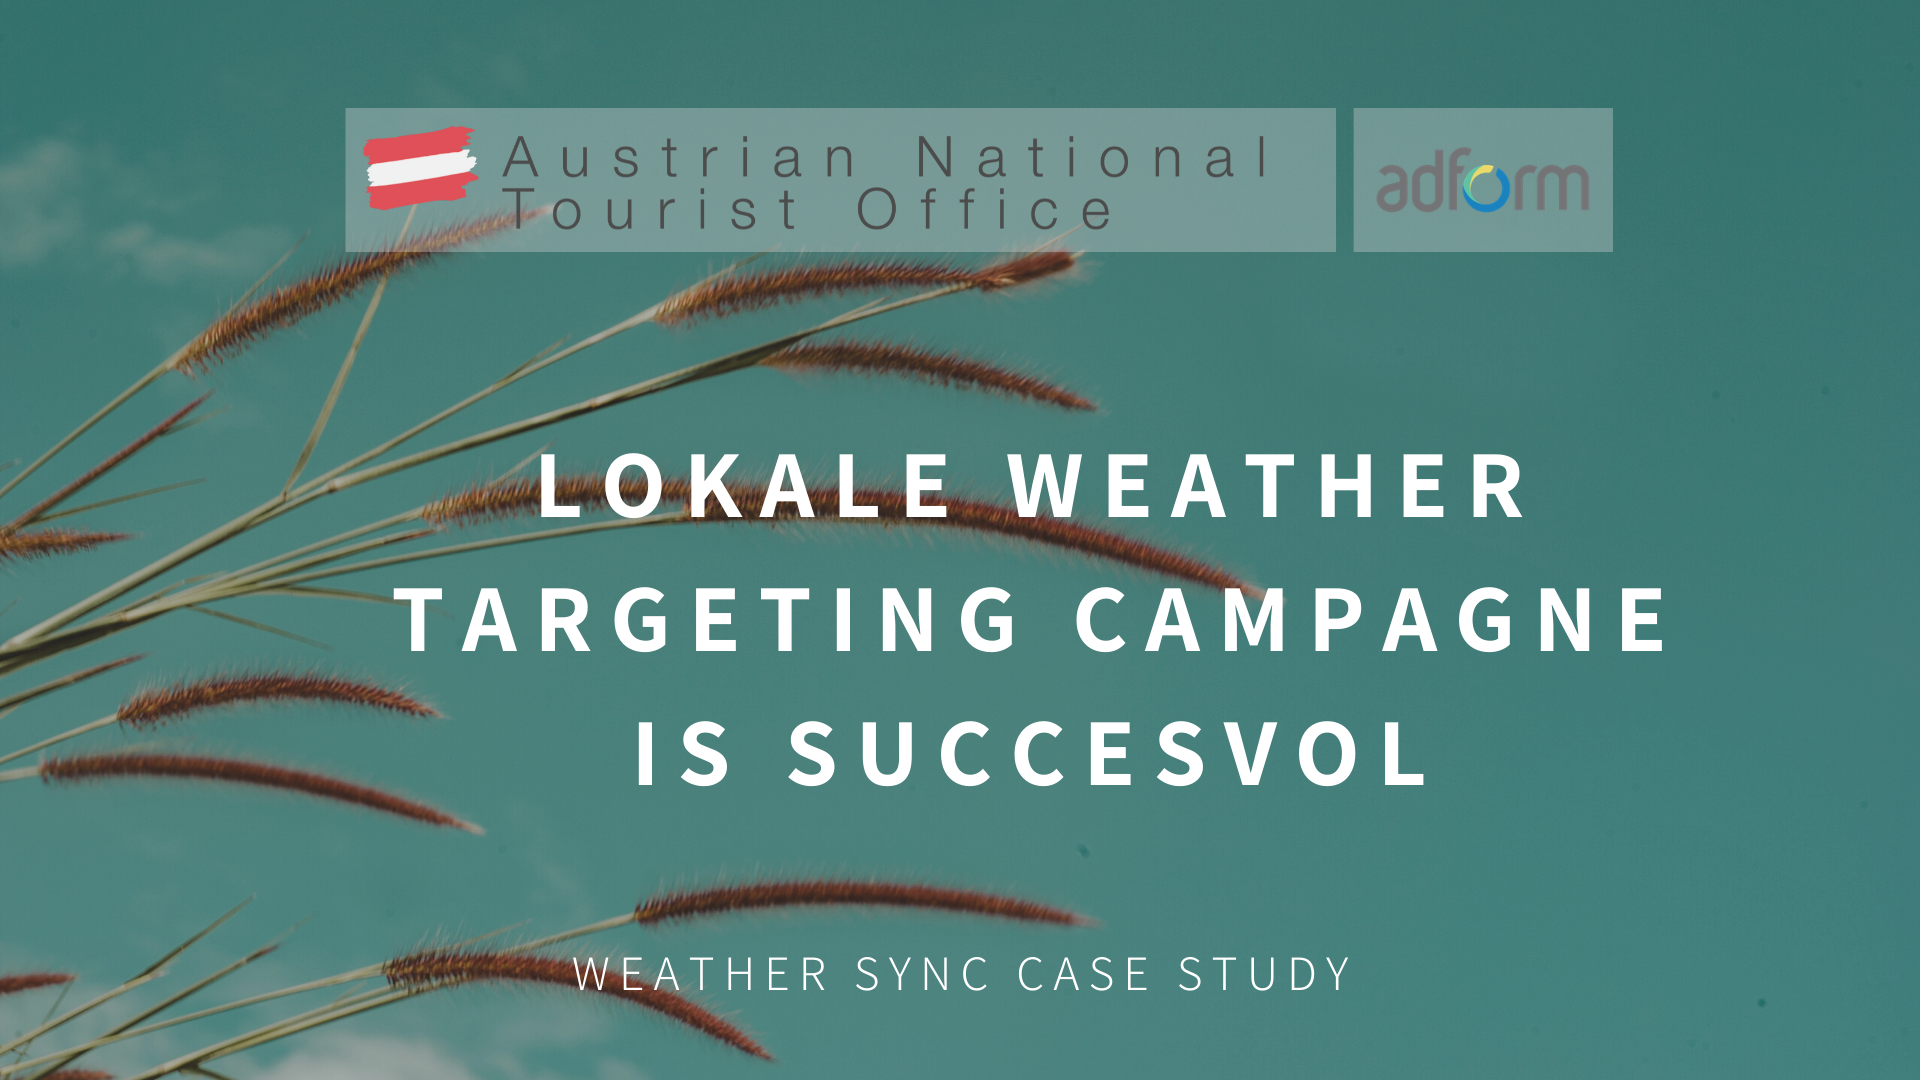 Weather targeting campagne